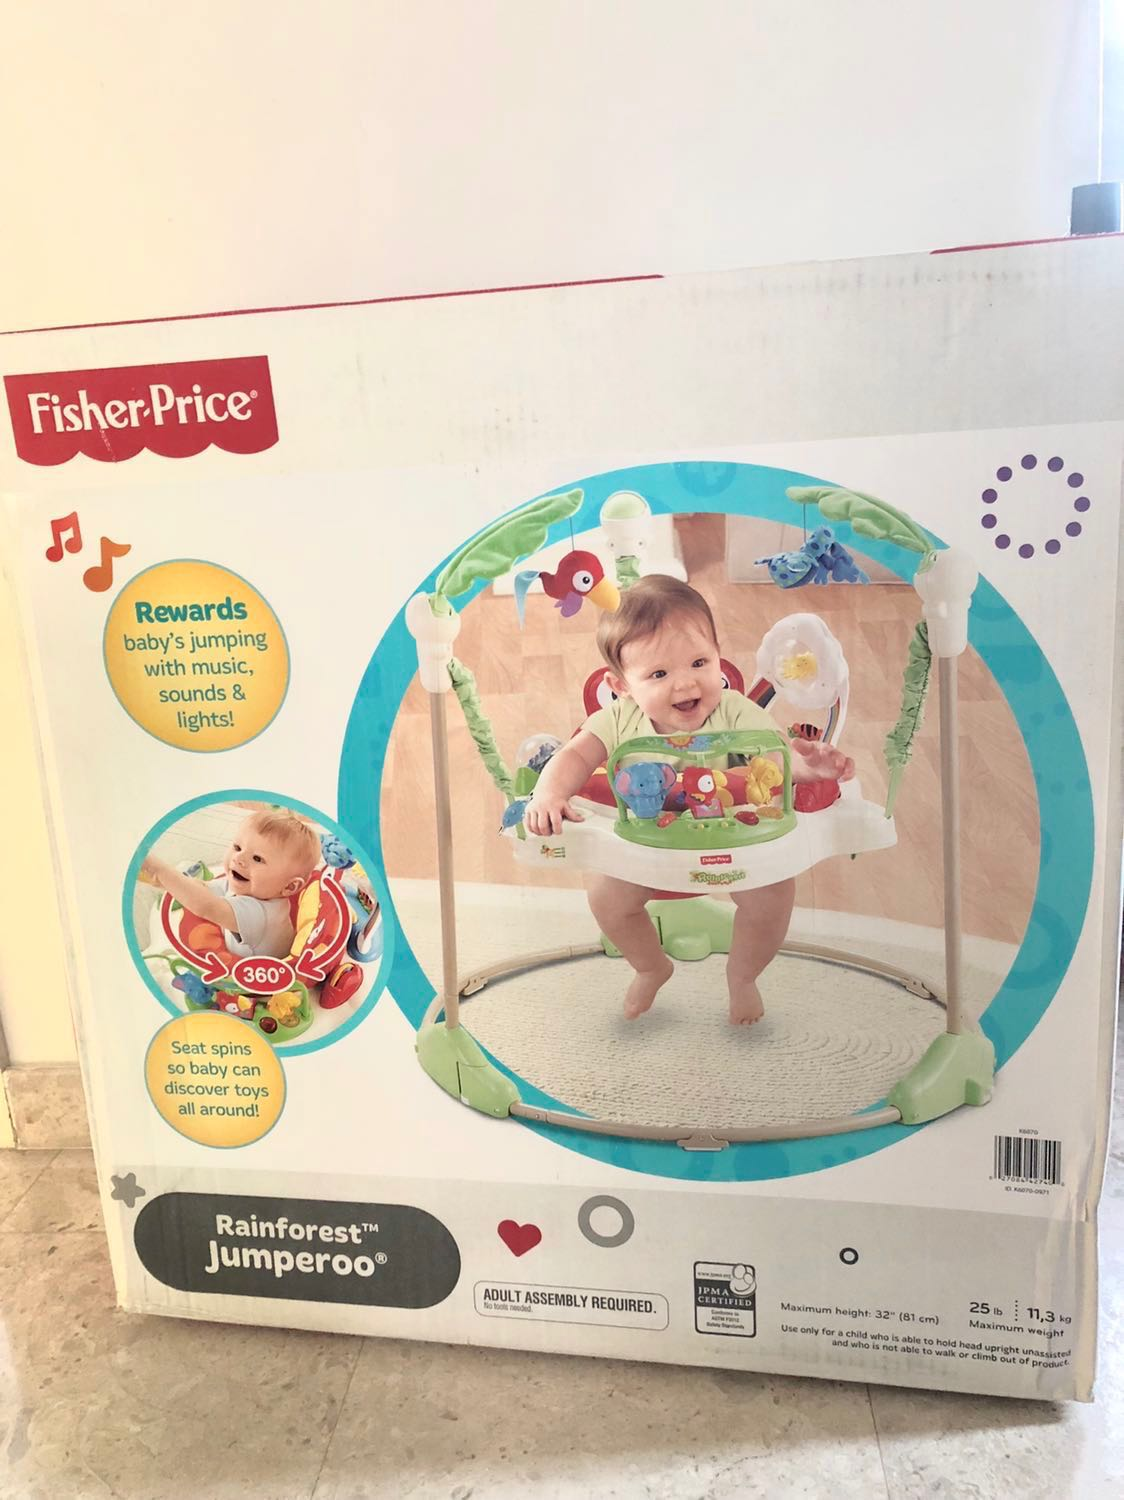 447882d5b Fisher Price Rainforest Jumperoo(with box)